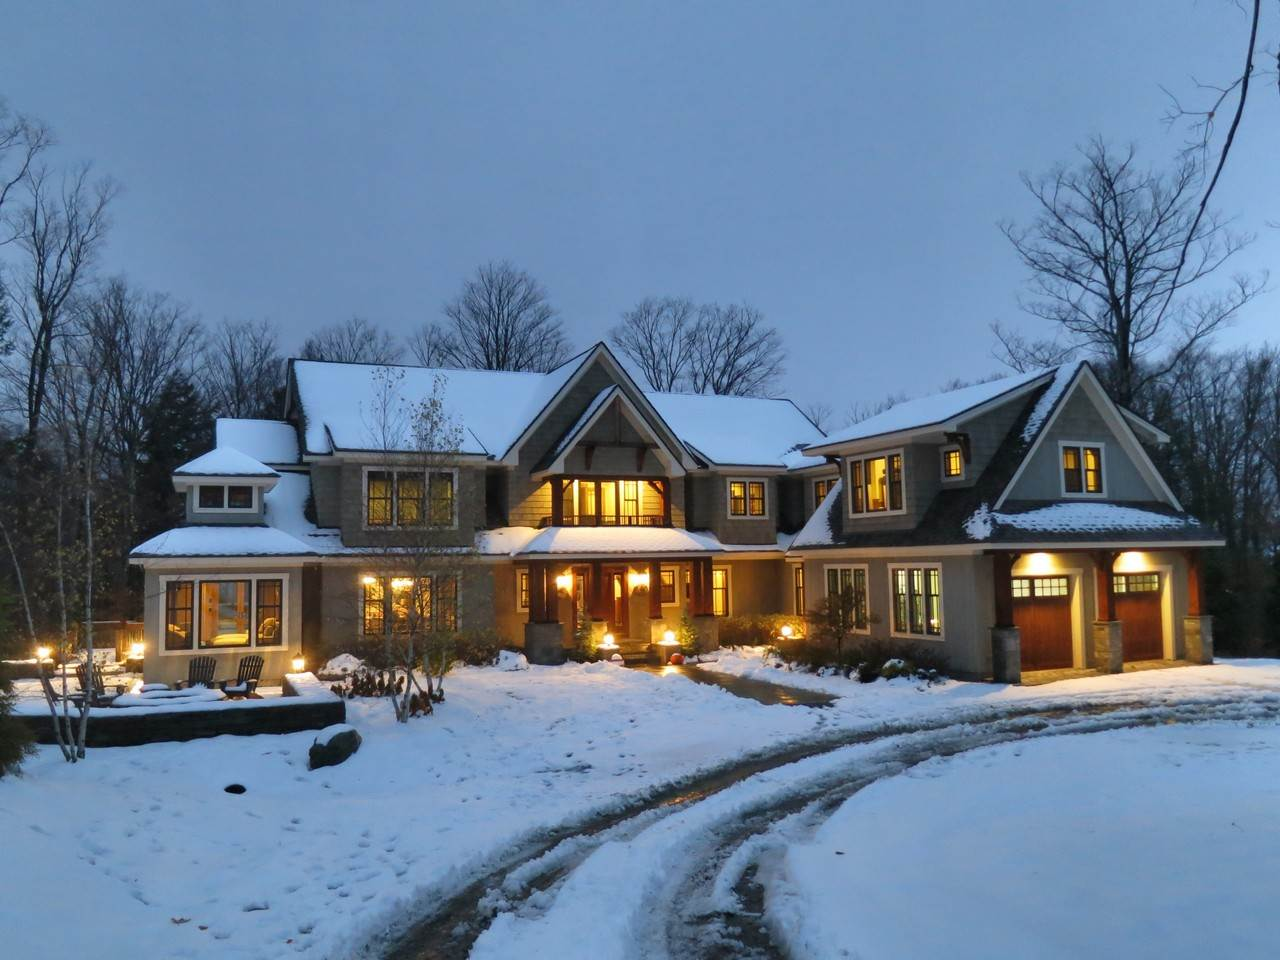 Homes for sale in stratton mountain area page 1 for Home builders in vermont